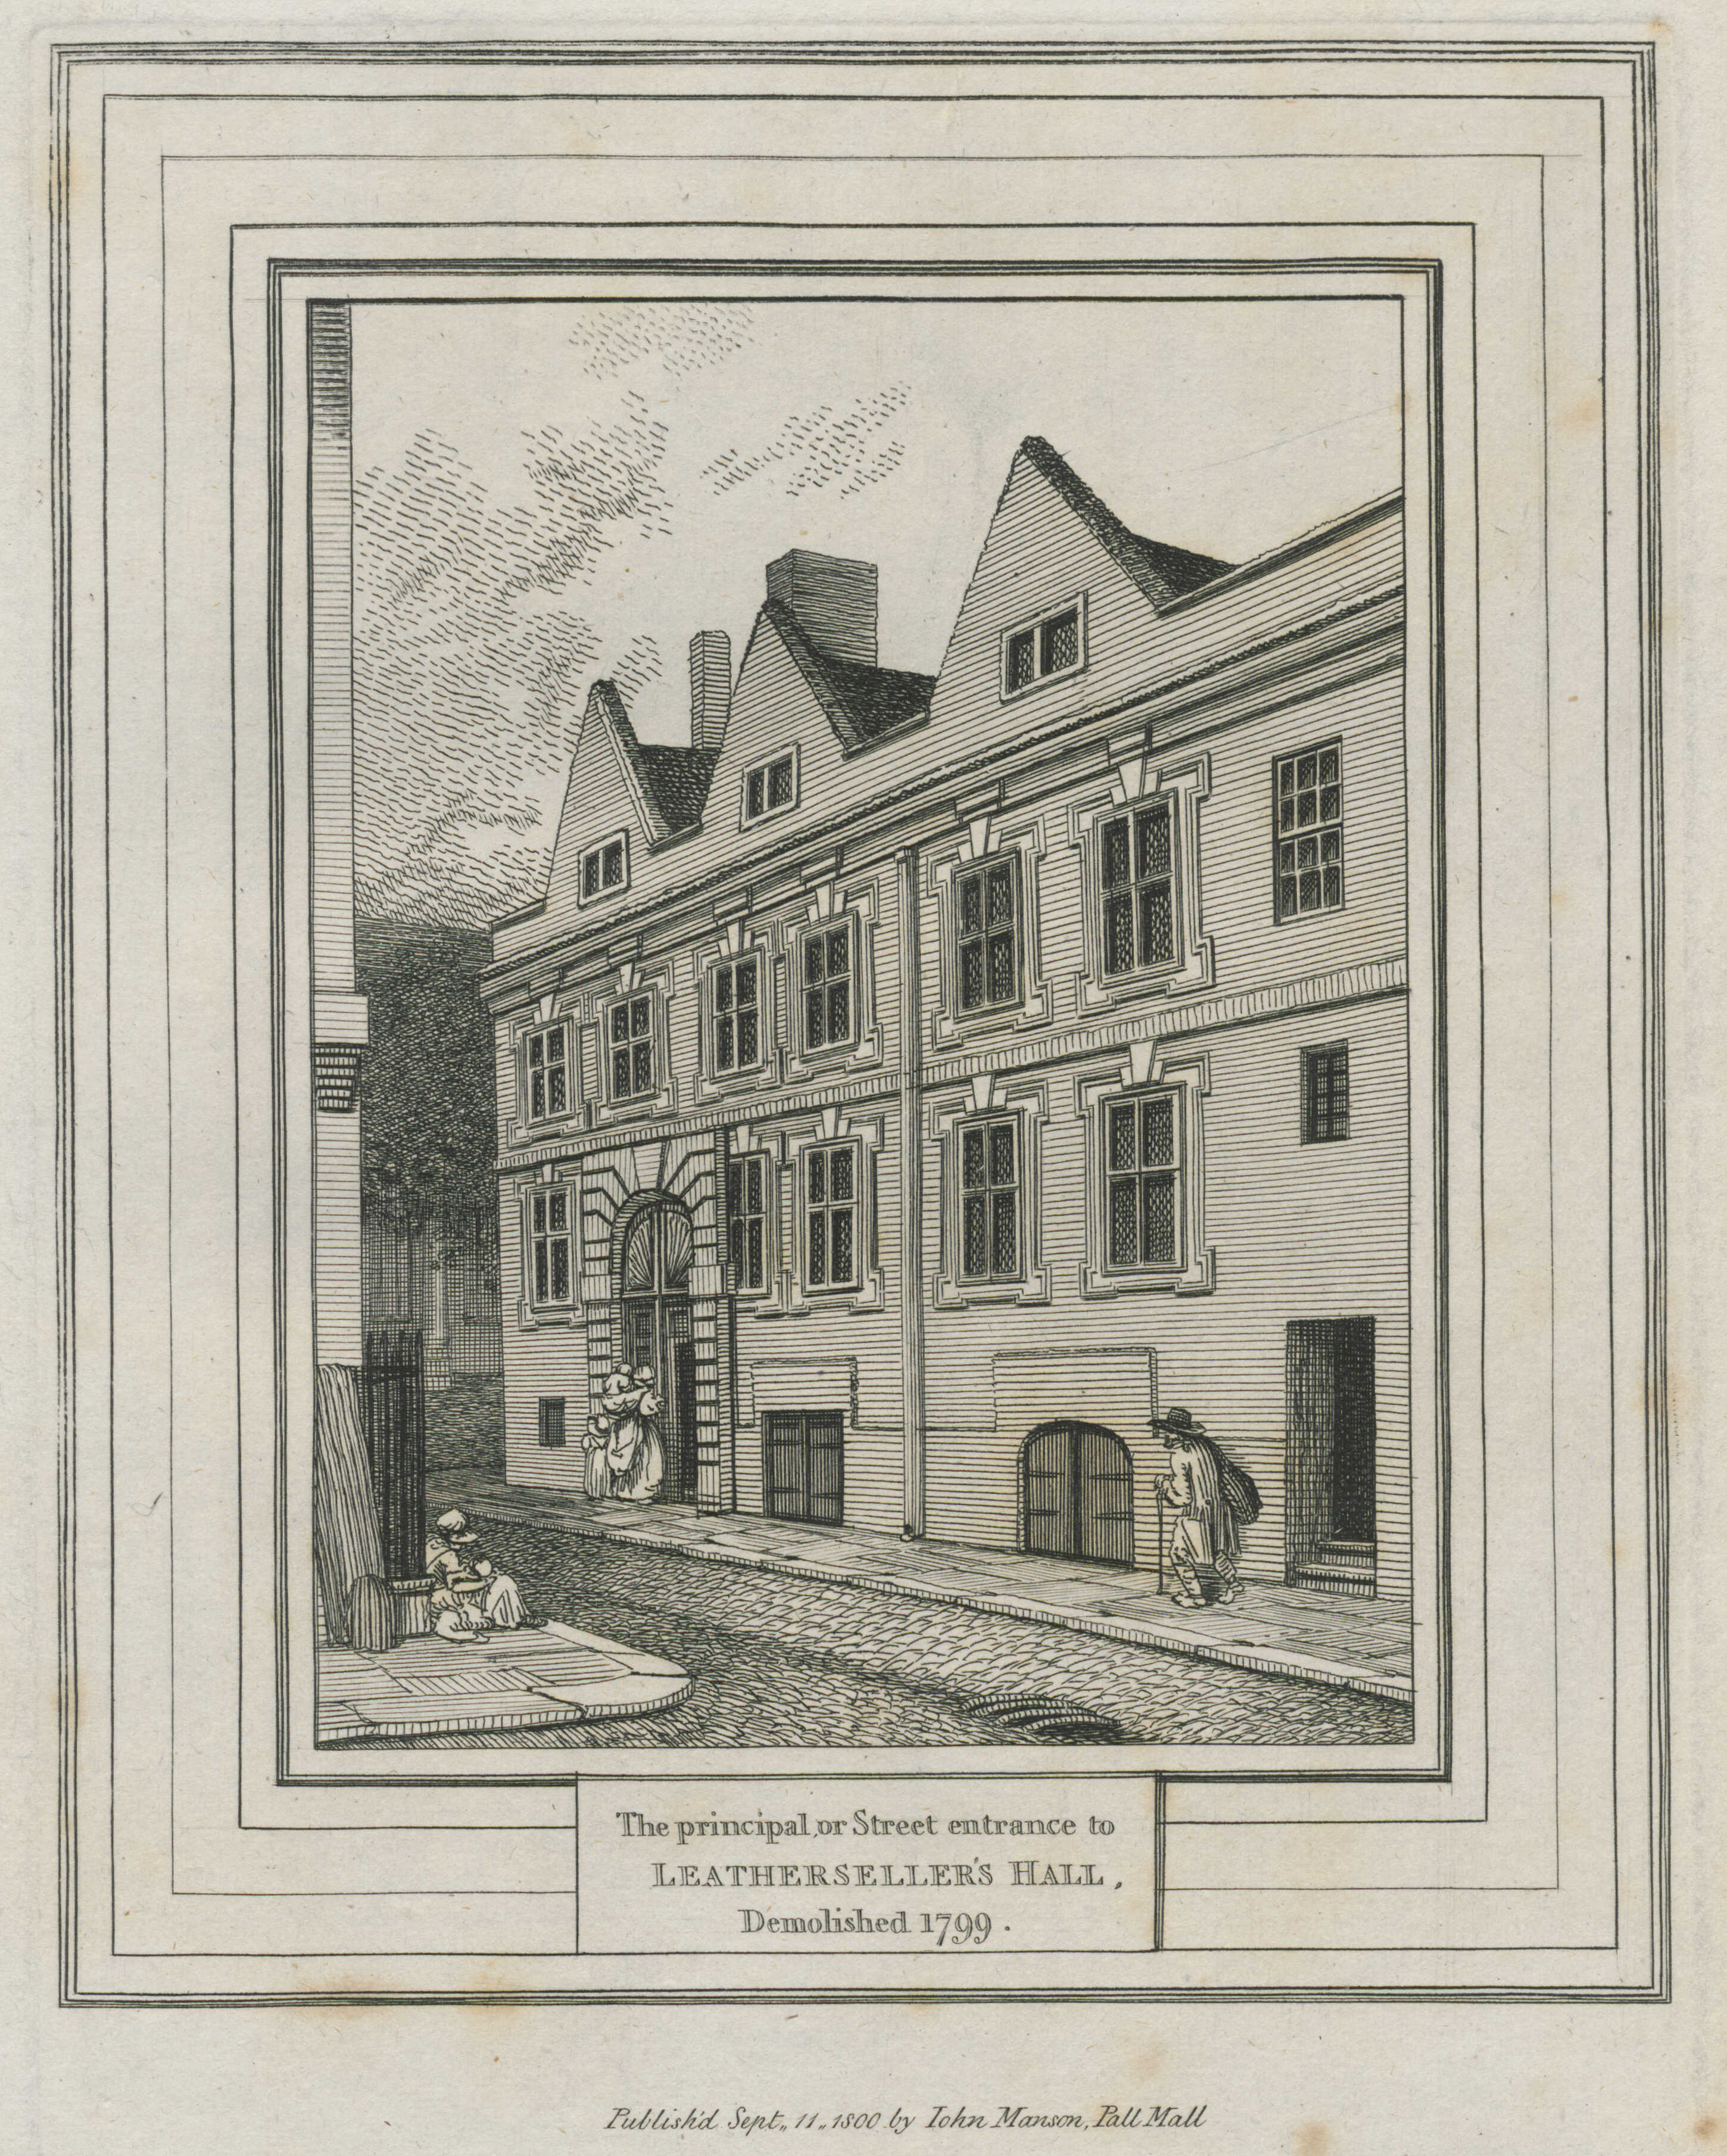 86-the-principal-or-street-entrance-to-leathersellers-hall-demolished-1799